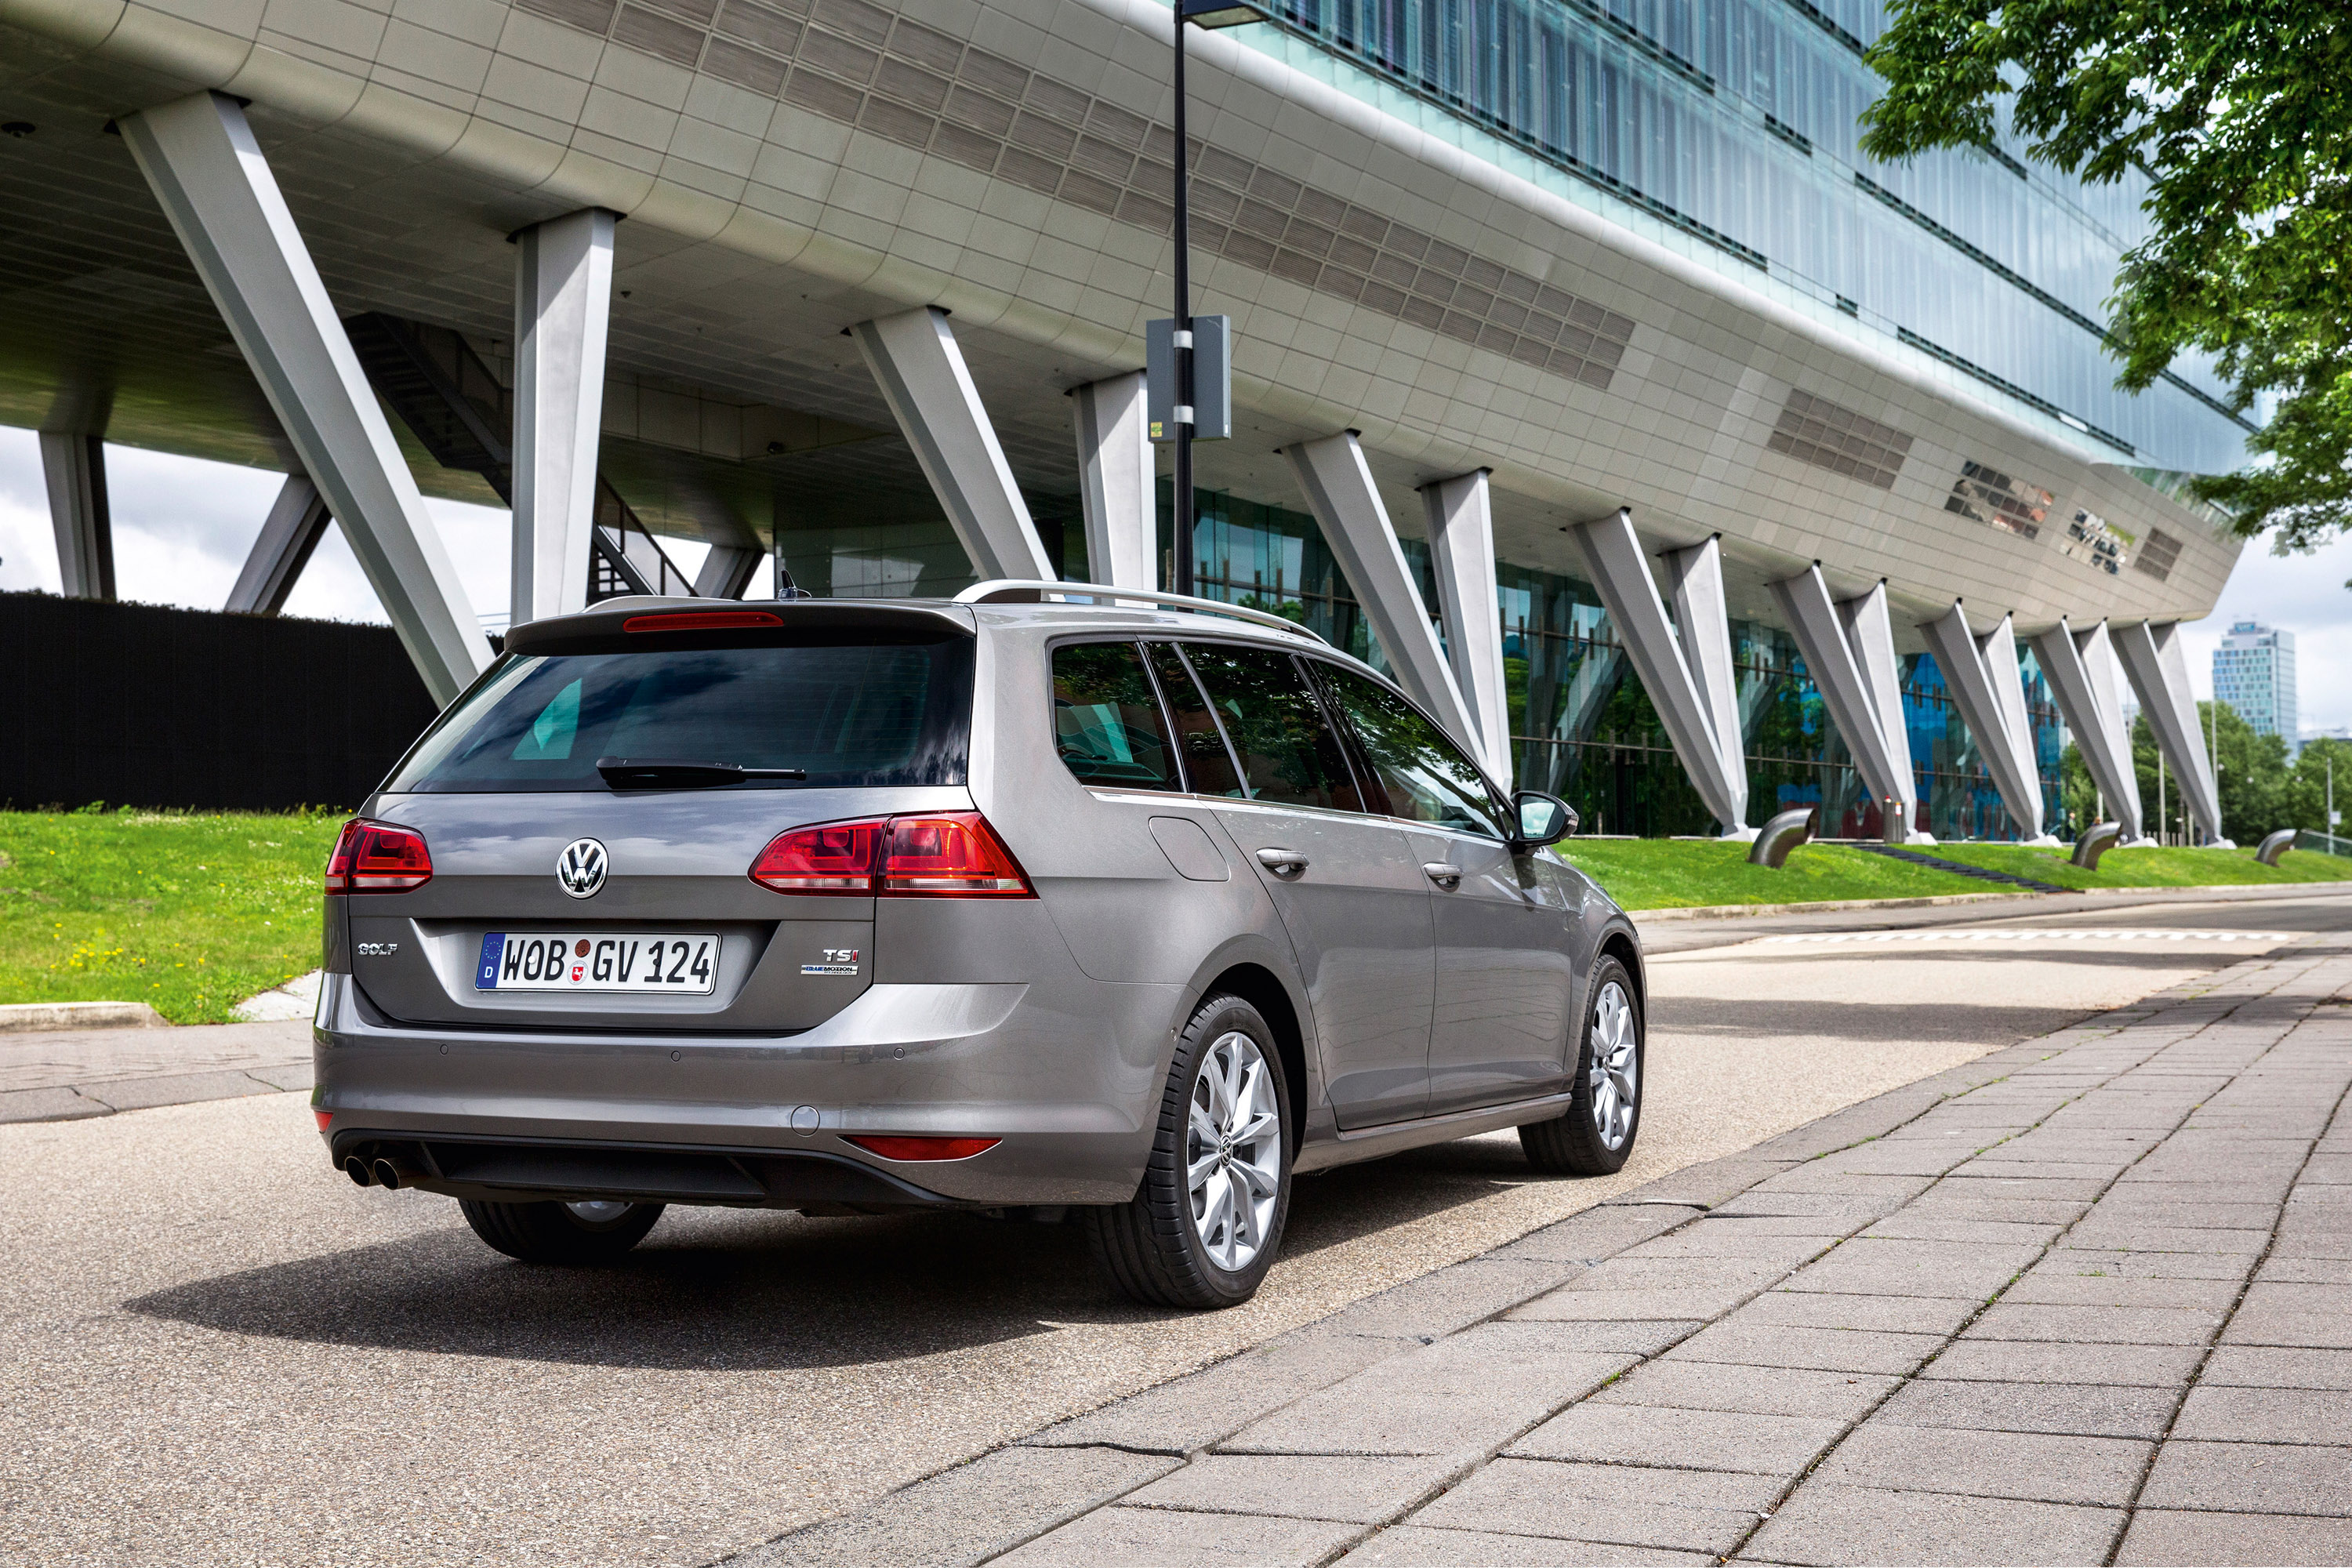 2014 Volkswagen Golf VII Variant 4Motion - EU Price